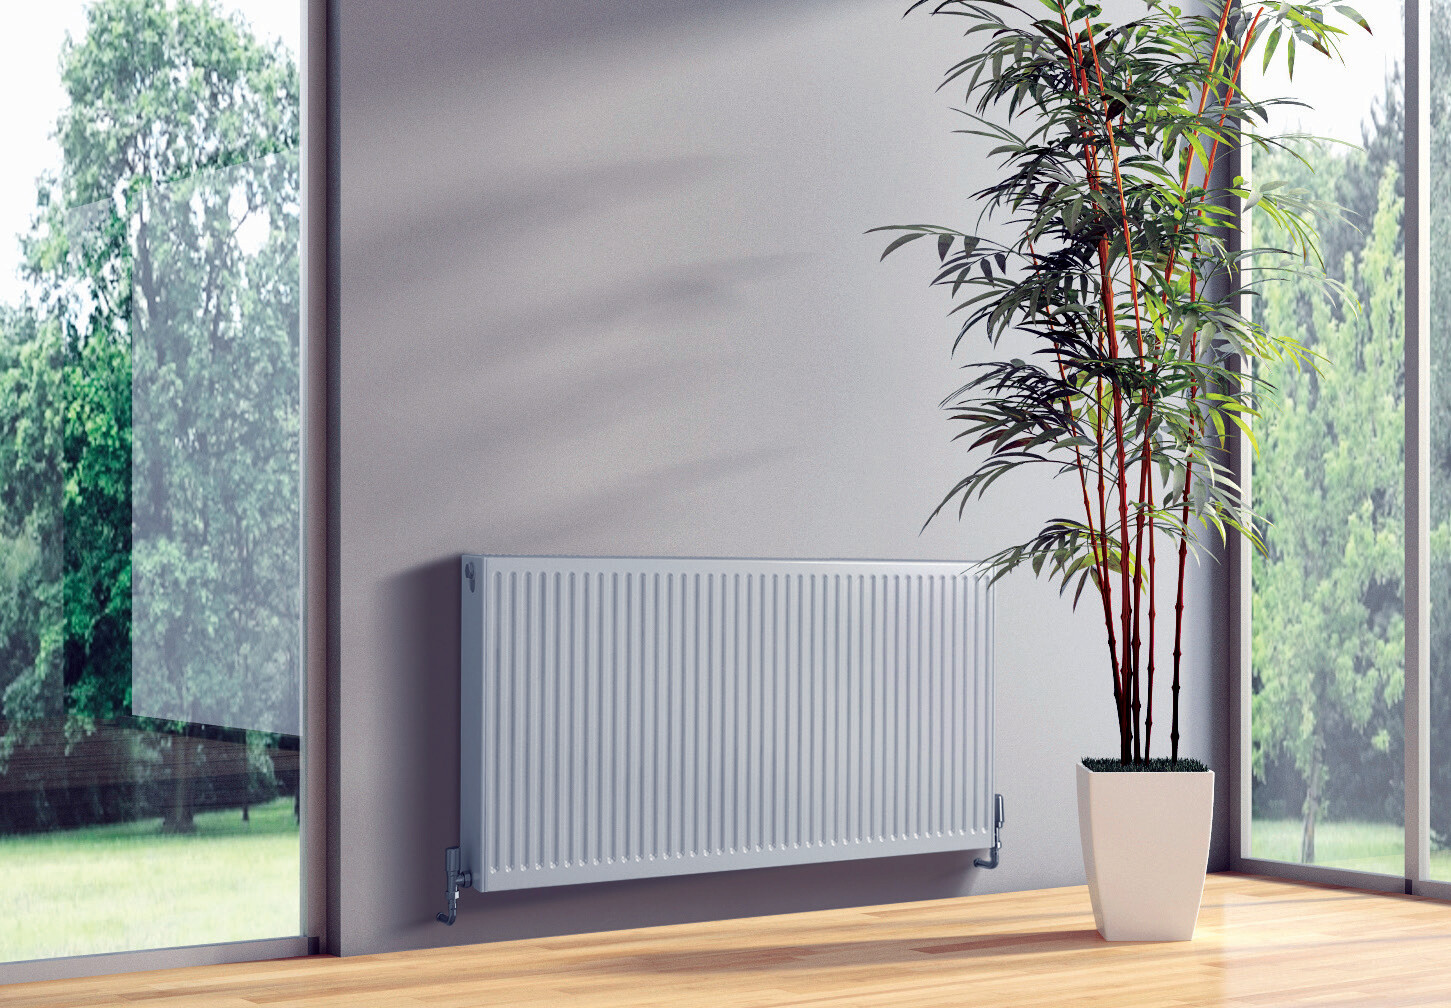 ECOSTYLE PLUS STEEL PANEL RADIATORS